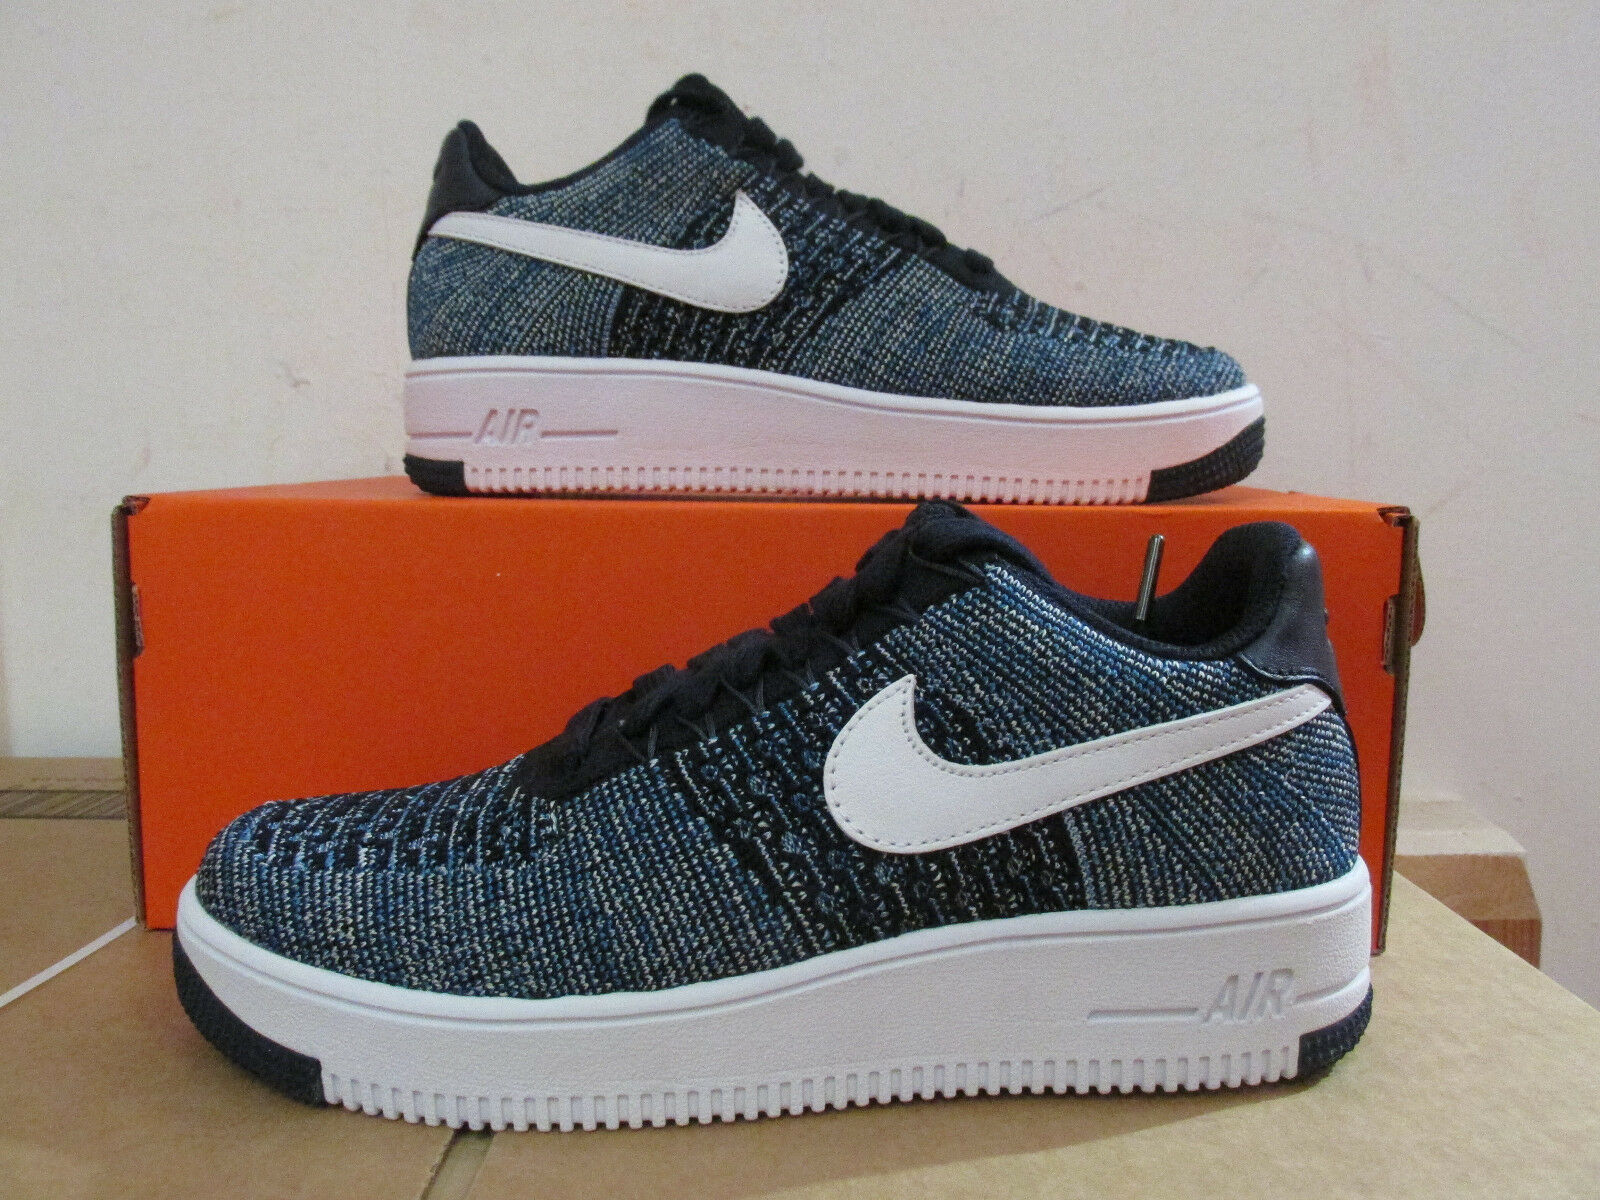 Nike Af1 Ultra Flyknit Low Mens Running Trainers 817419 400 Sneakers CLEARANCE